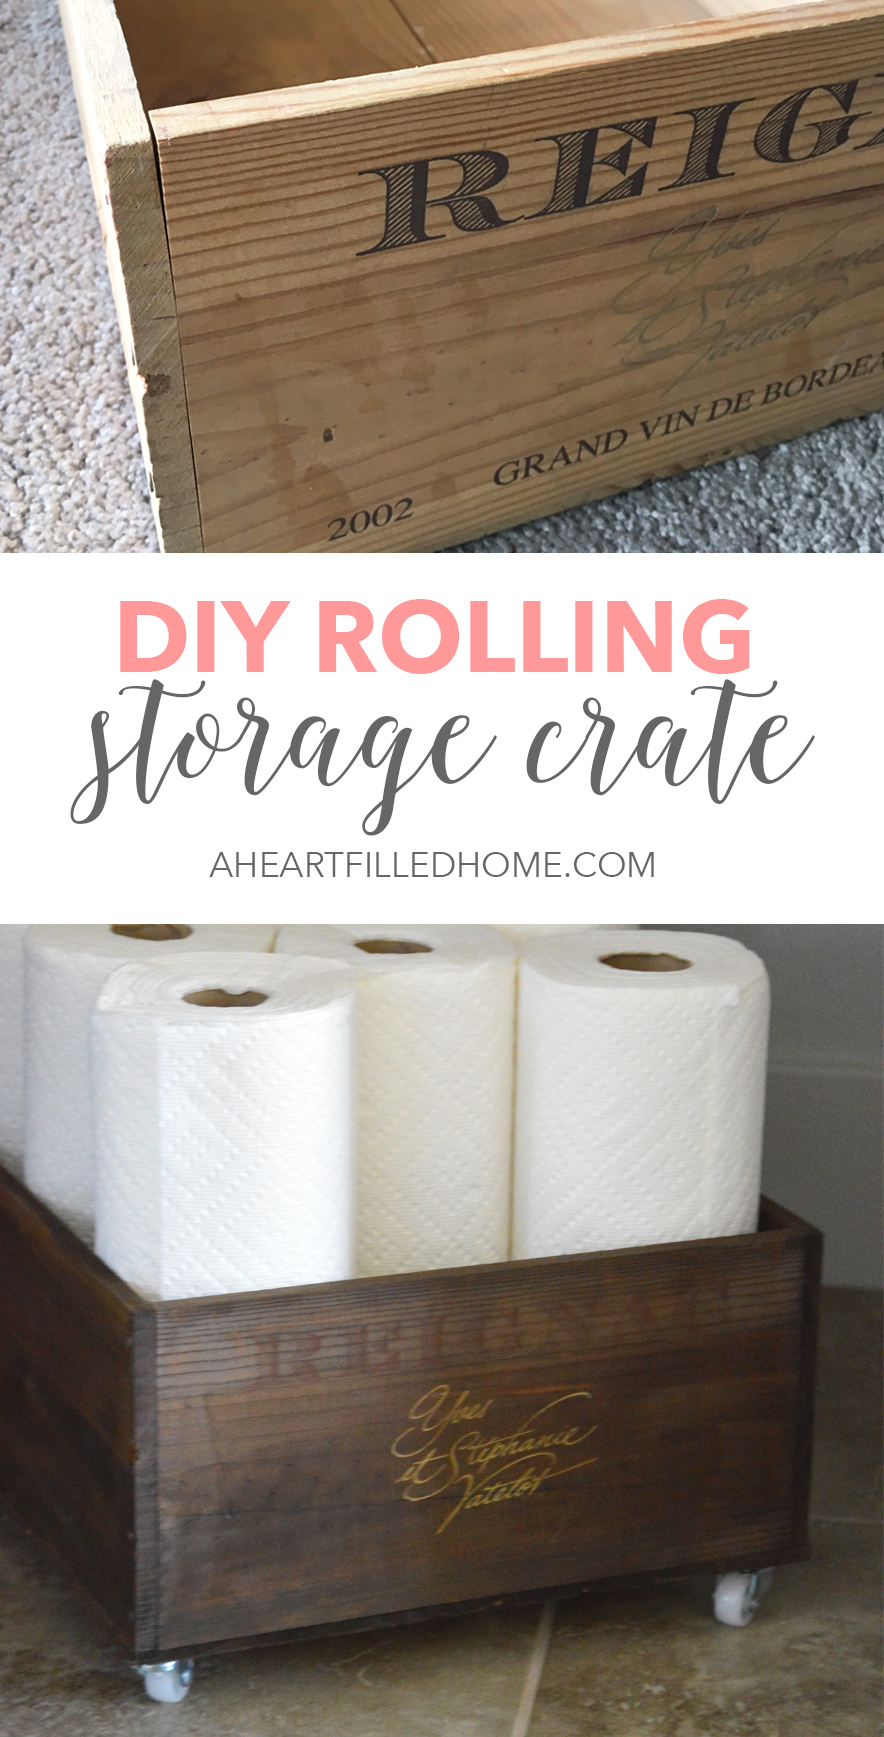 DIY Rolling Storage Crate - Find the easy DIY tutorial at aheartfilledhome.com!